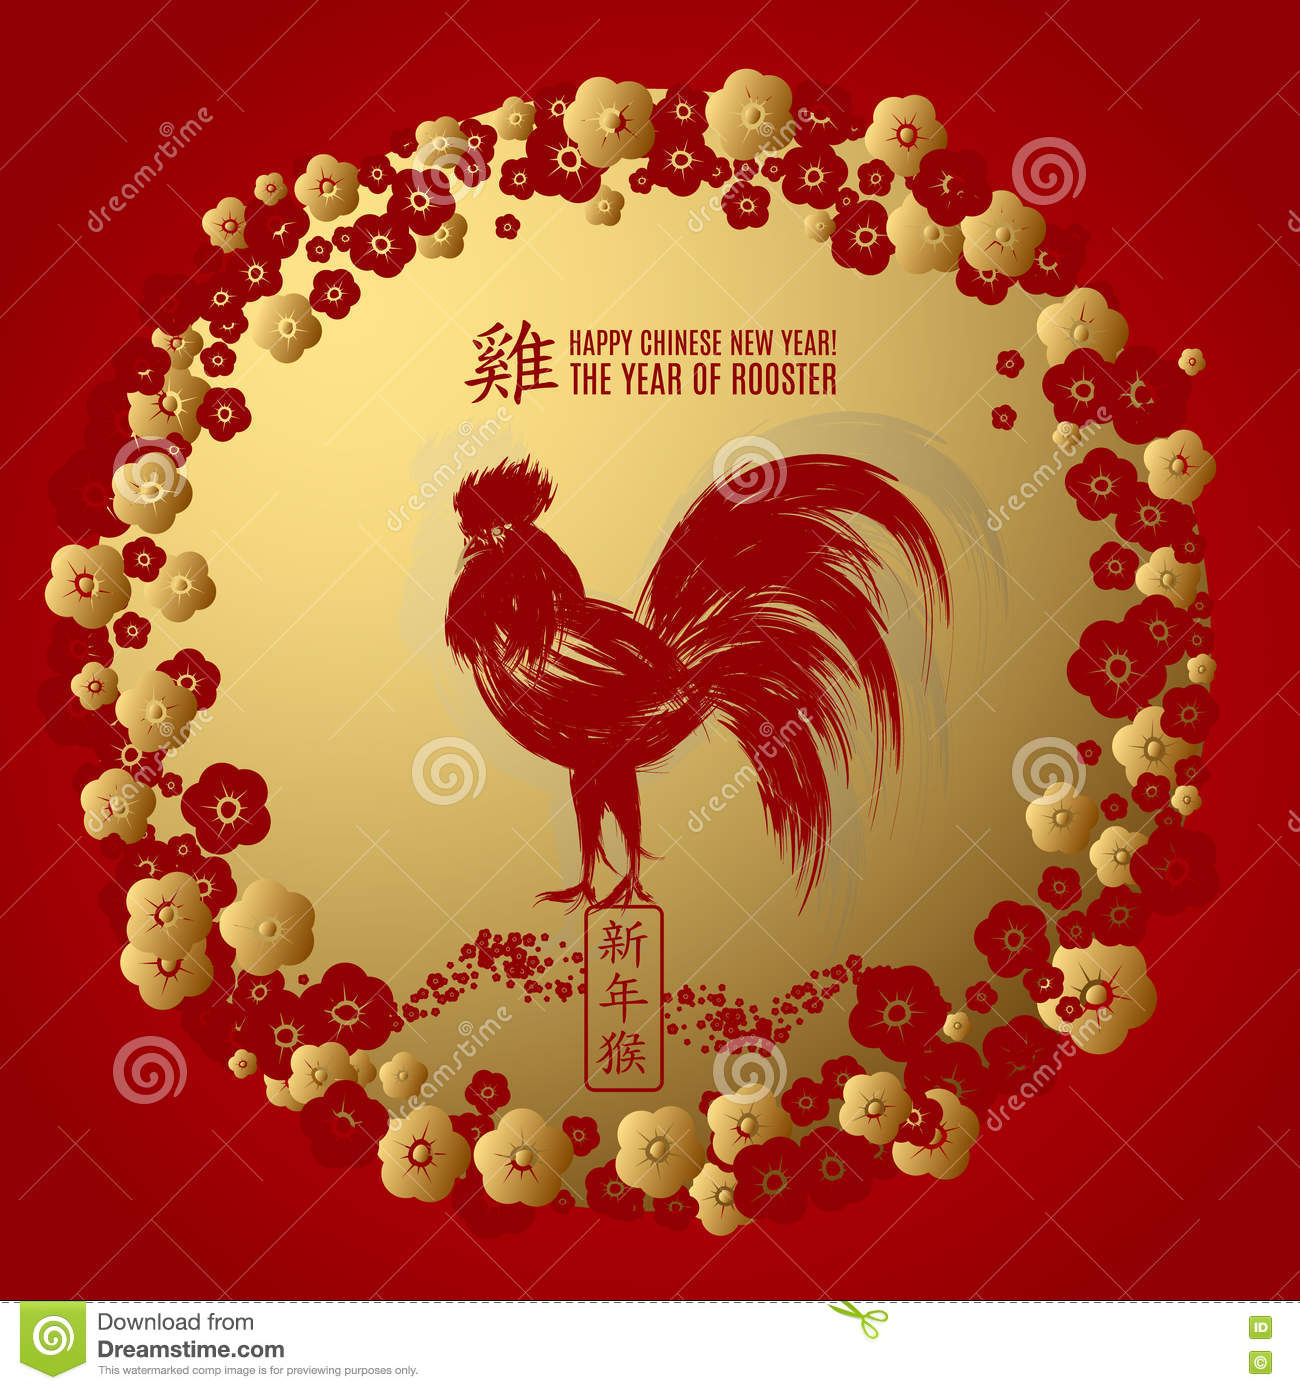 2017 chinese new year greeting card with round floral border and rooster vector illustration